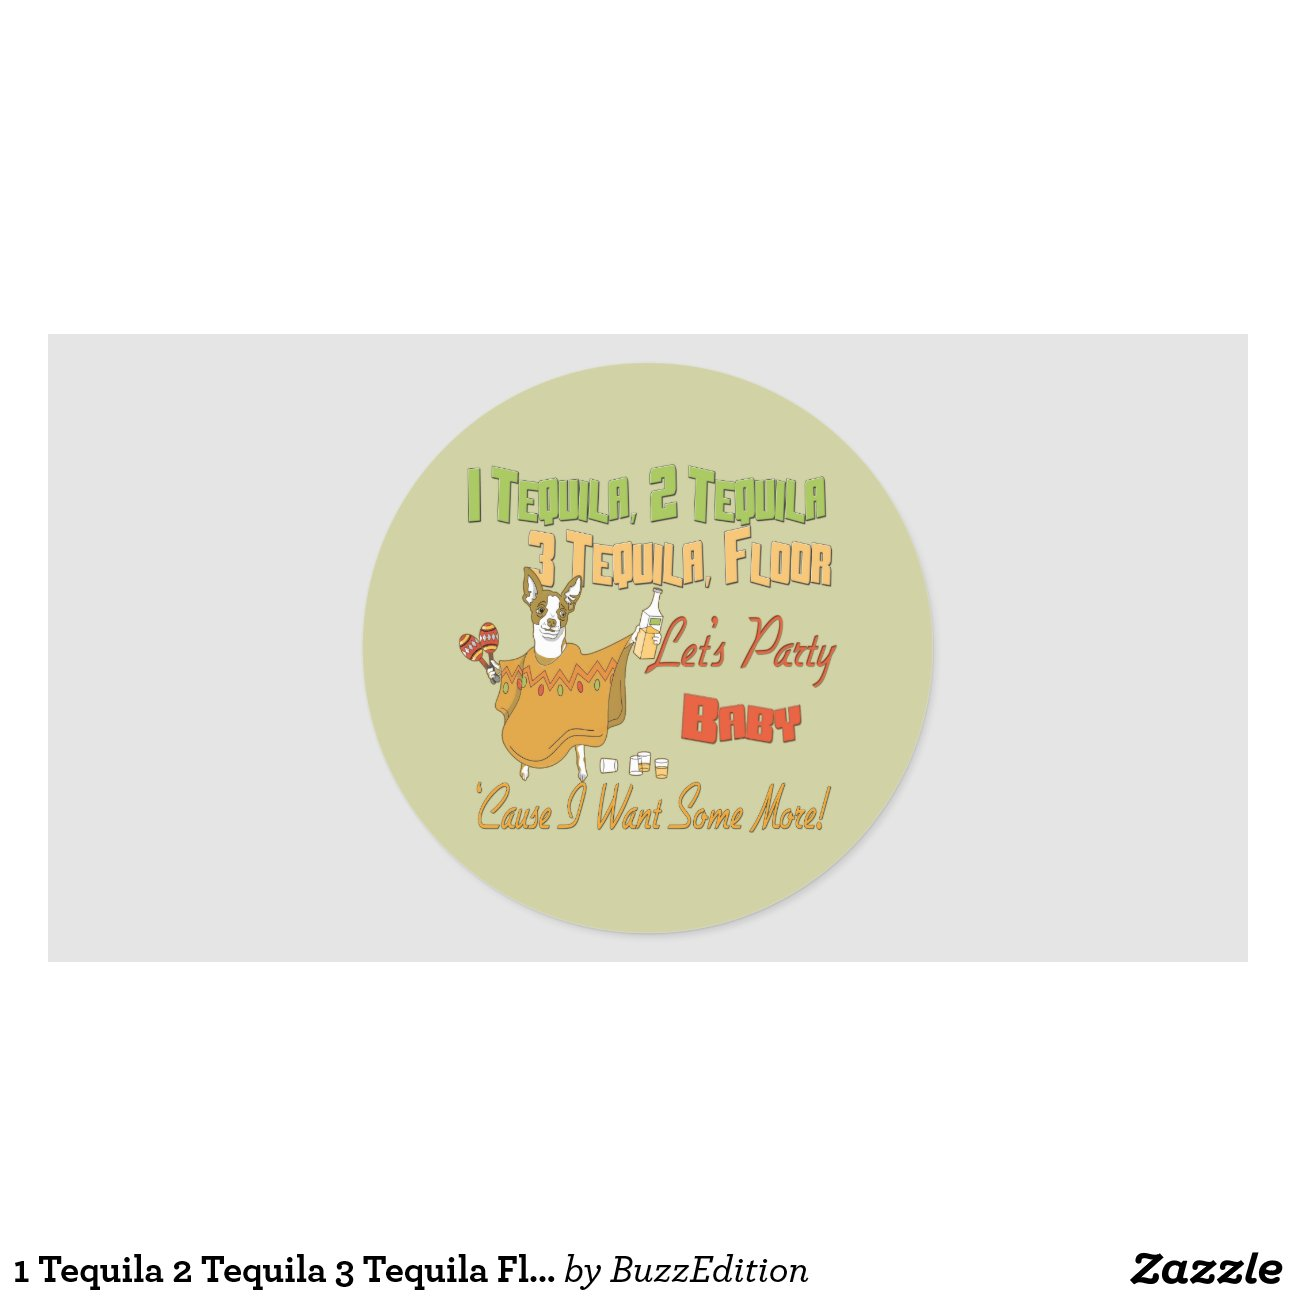 1 tequila 2 tequila 3 tequila floor zazzle for 1 tequila 2 tequila 3 tequila floor song